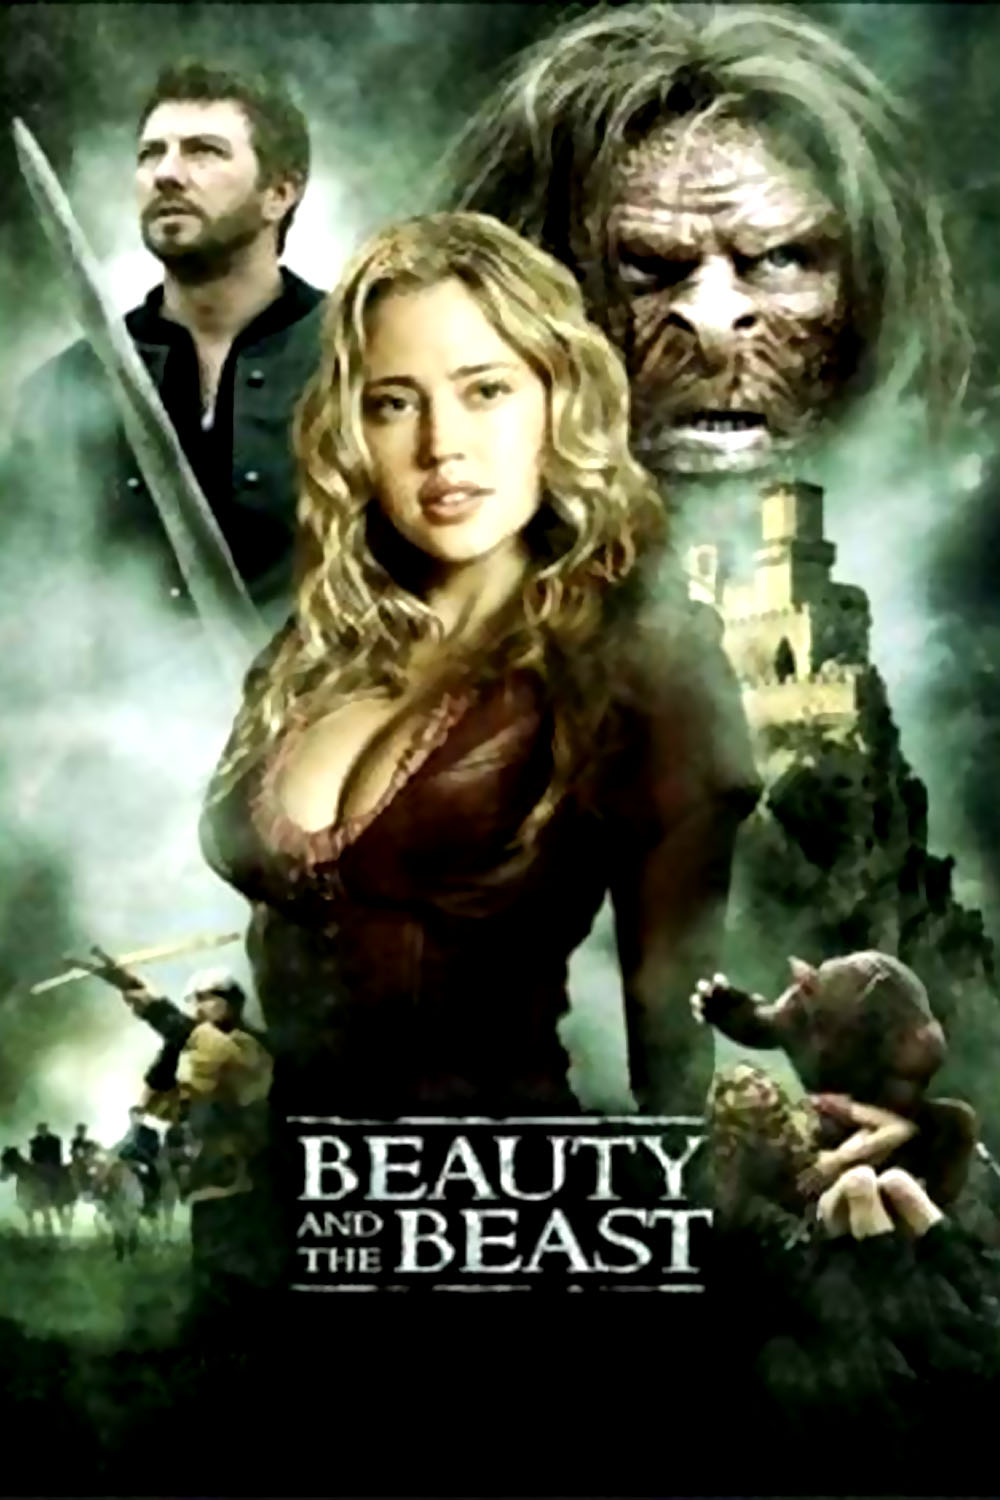 beauty and the beast summary Supersummary, a modern alternative to sparknotes and cliffsnotes, offers high-quality study guides that feature detailed chapter summaries and analysis of major.